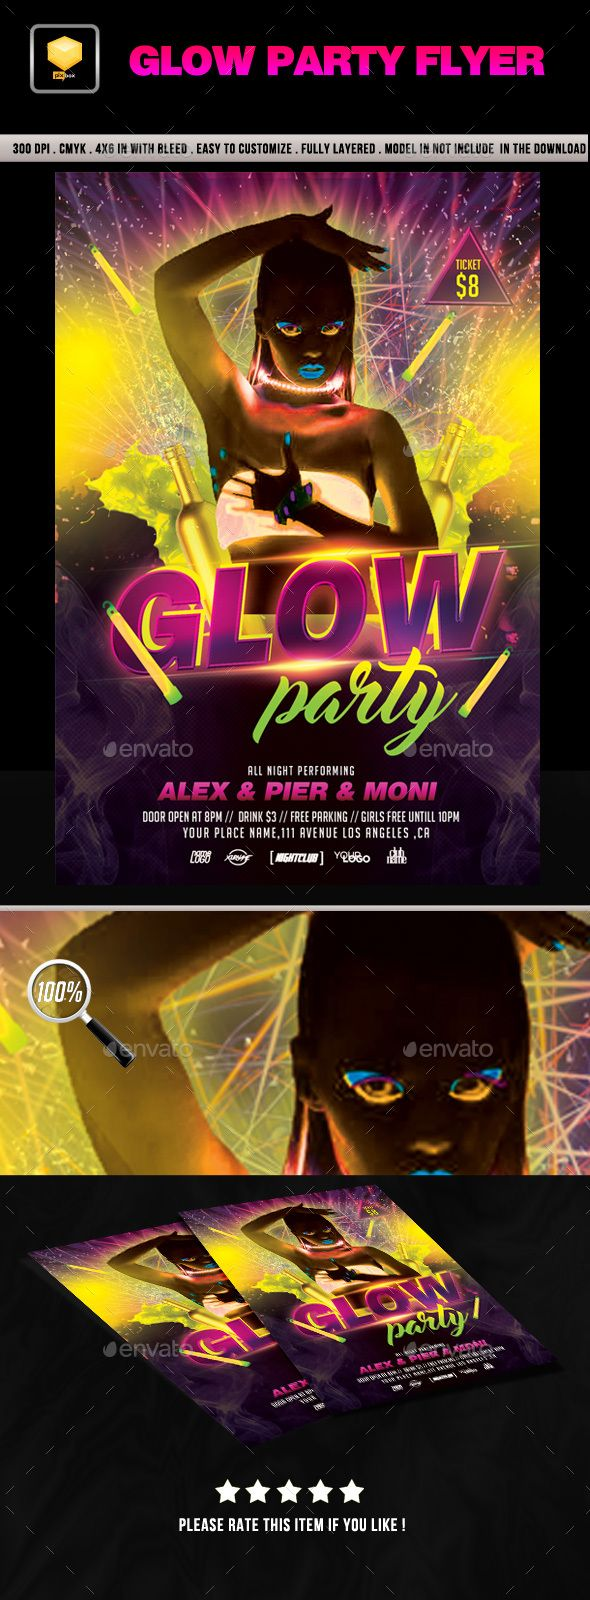 Glow Party Flyer Template PSD